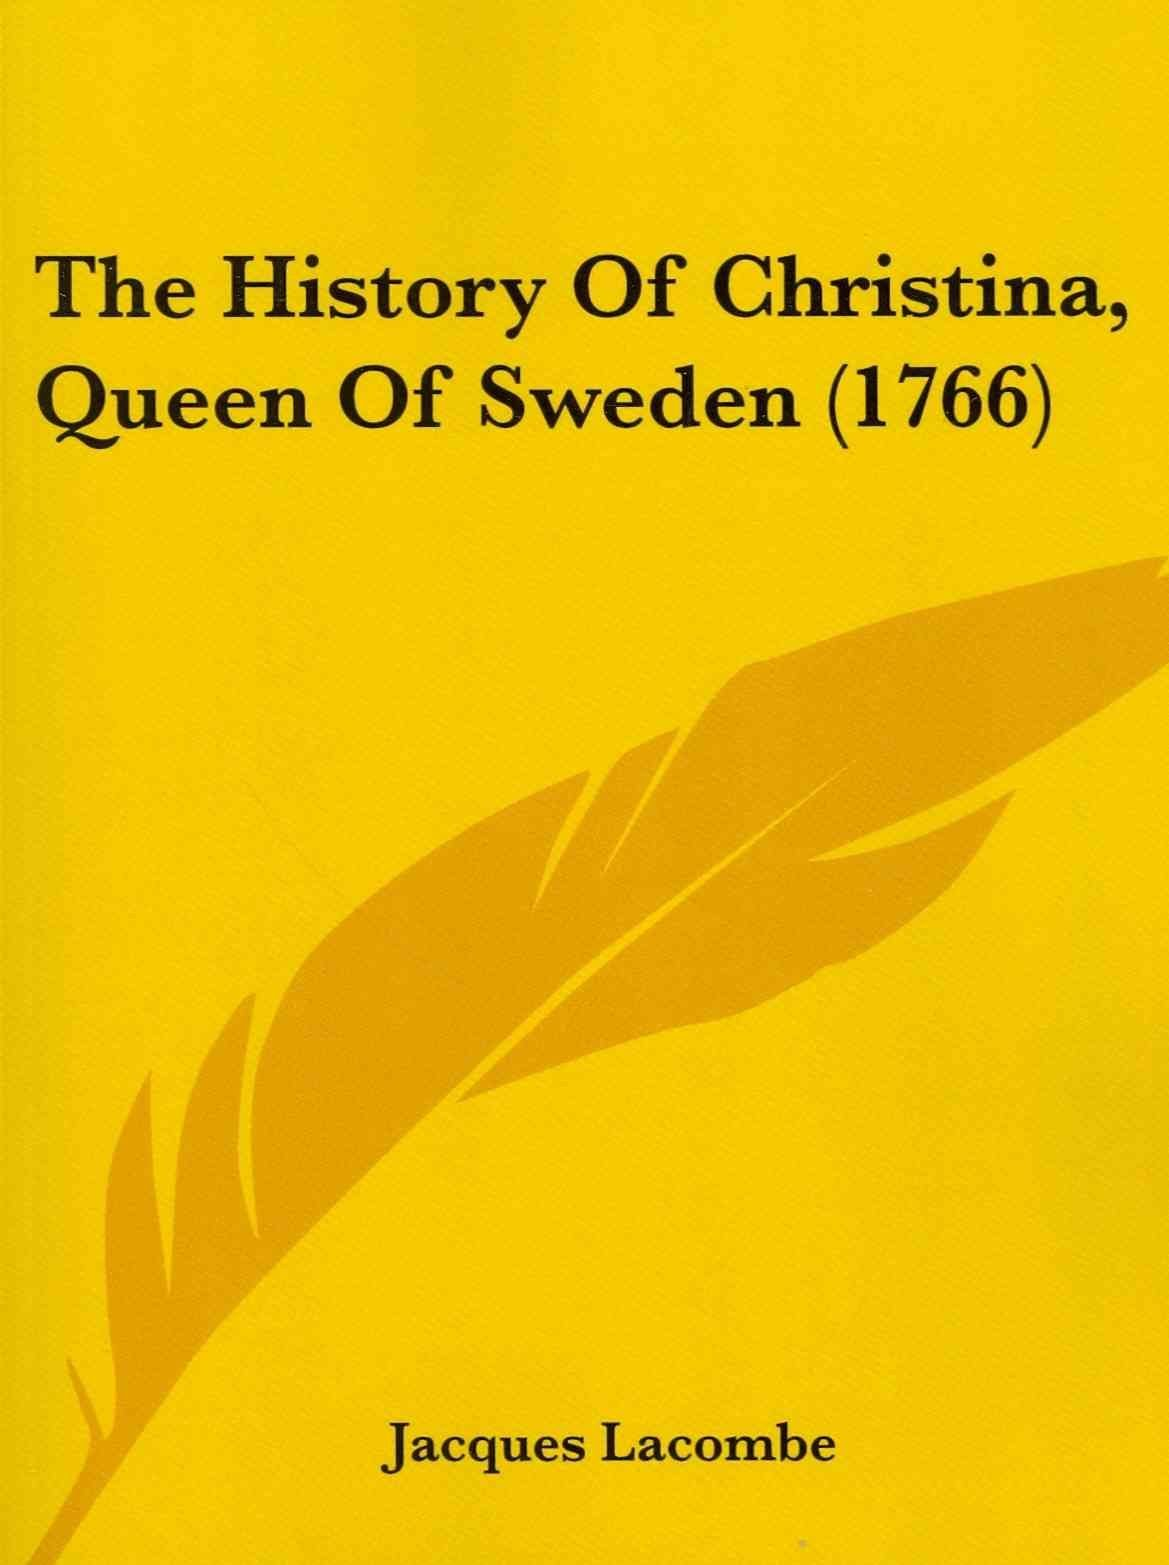 The History of Christina, Queen of Sweden (1766)